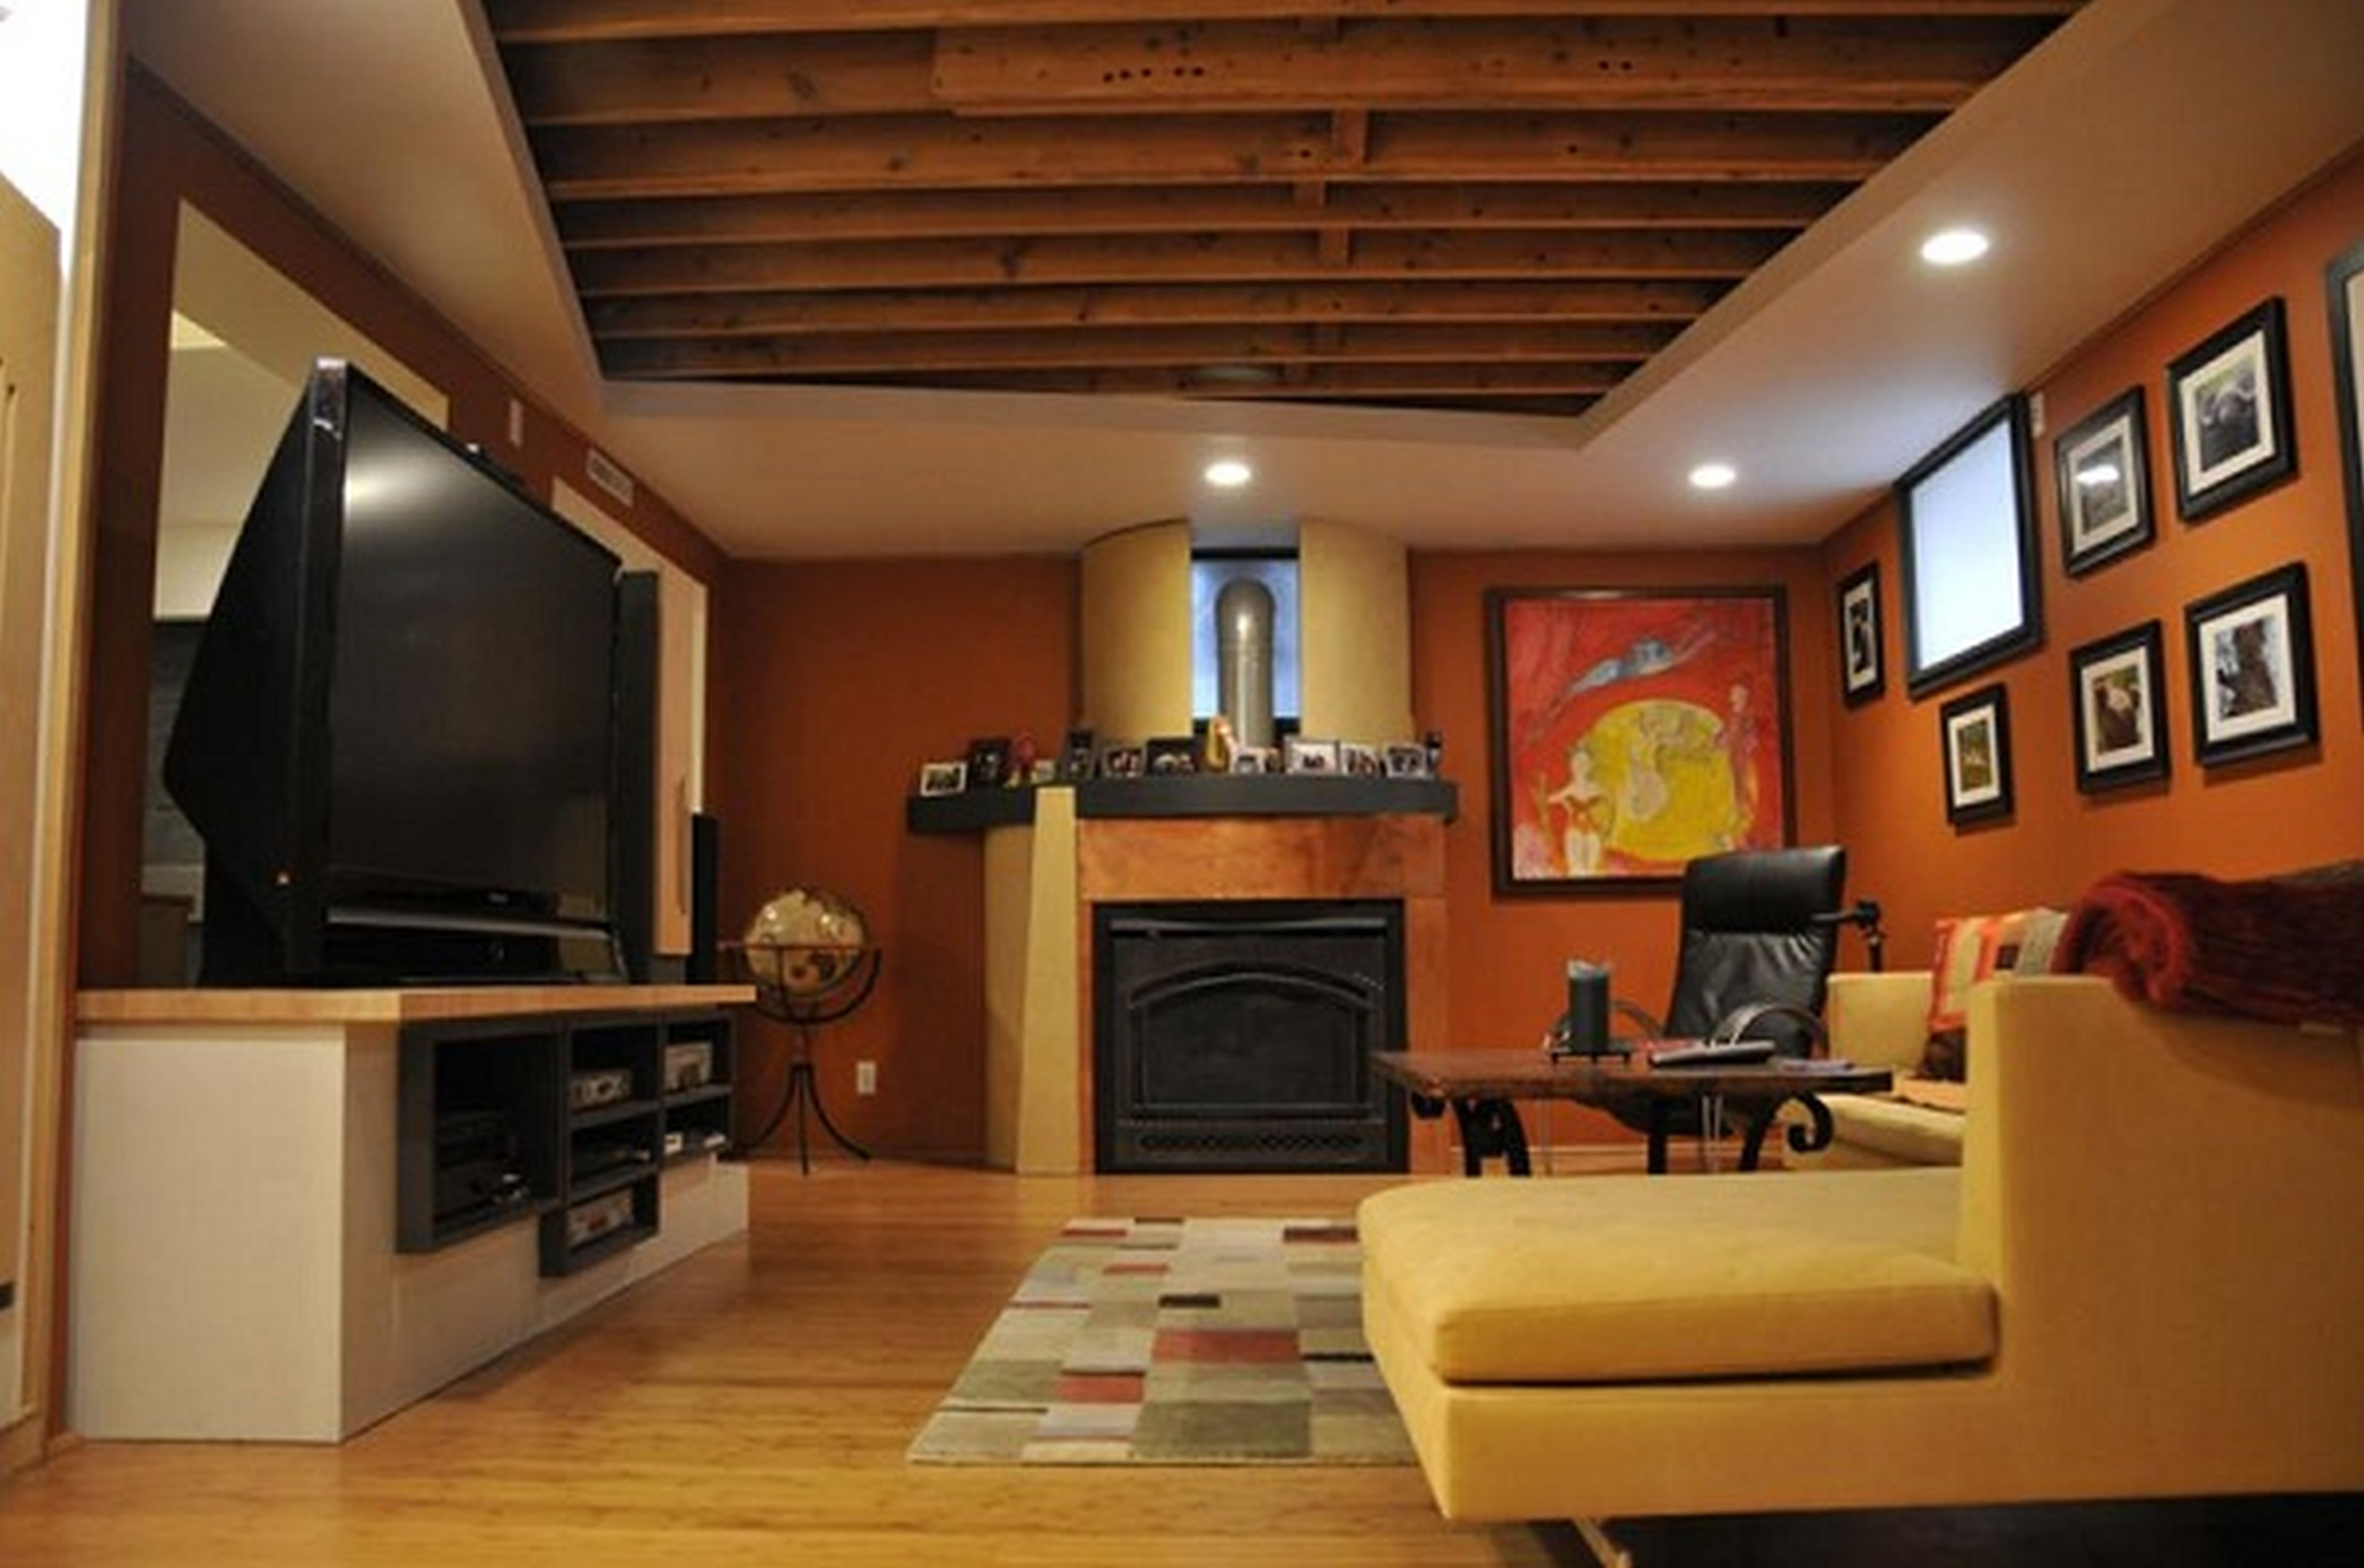 Complete Cozy Media Room with Cream Sectional Sofa and Black Fireplace under Wooden Basement Ceiling Ideas